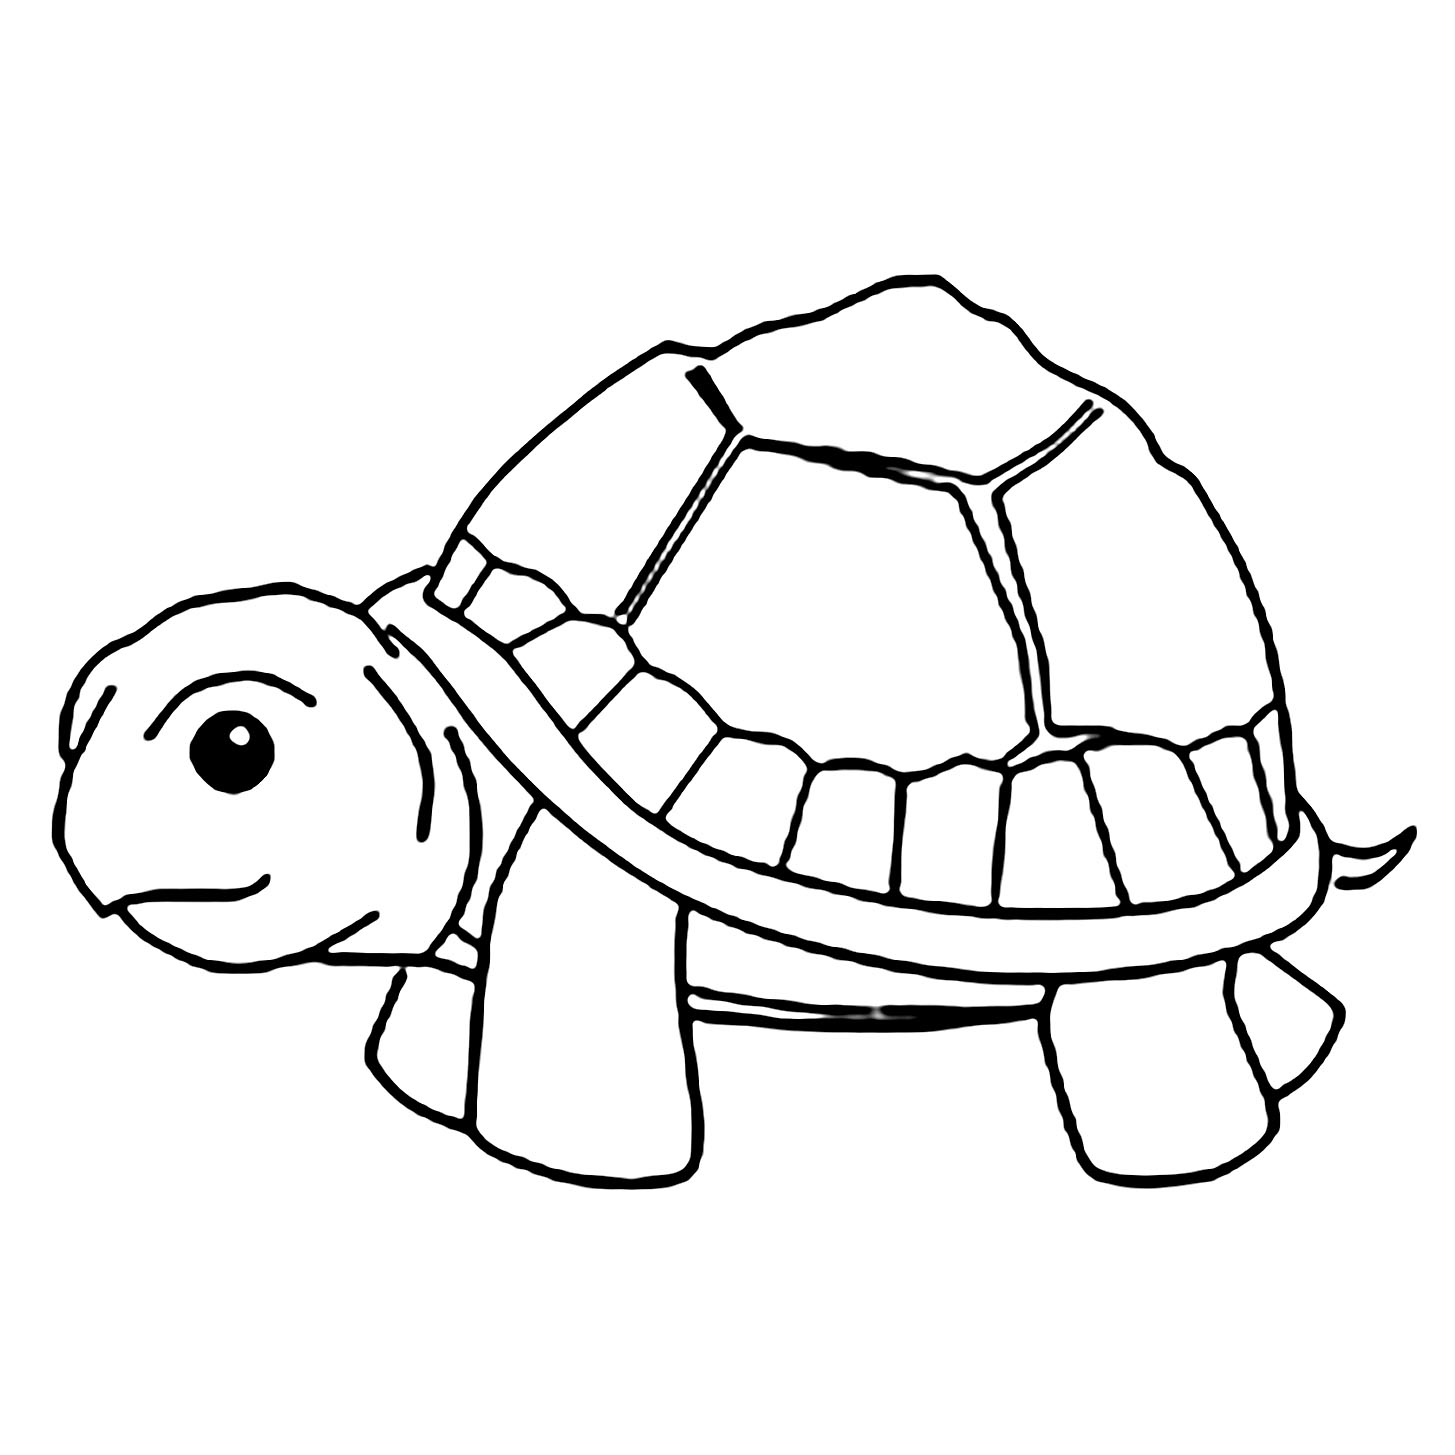 turtle pictures for coloring print download turtle coloring pages as the pictures for turtle coloring